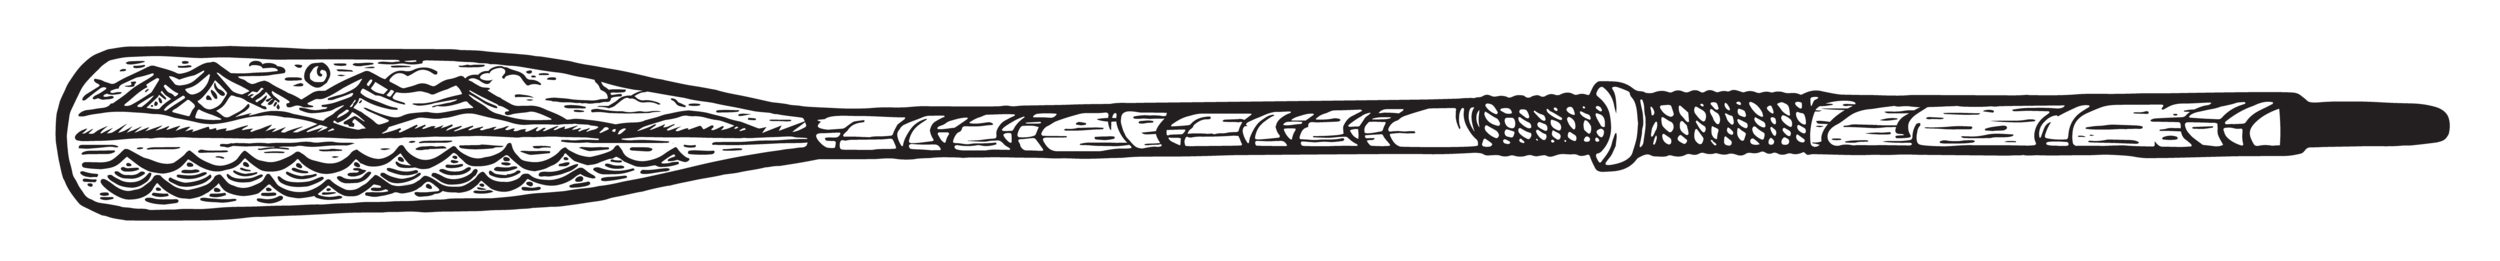 Colorado Raft Rental OAR (large).png